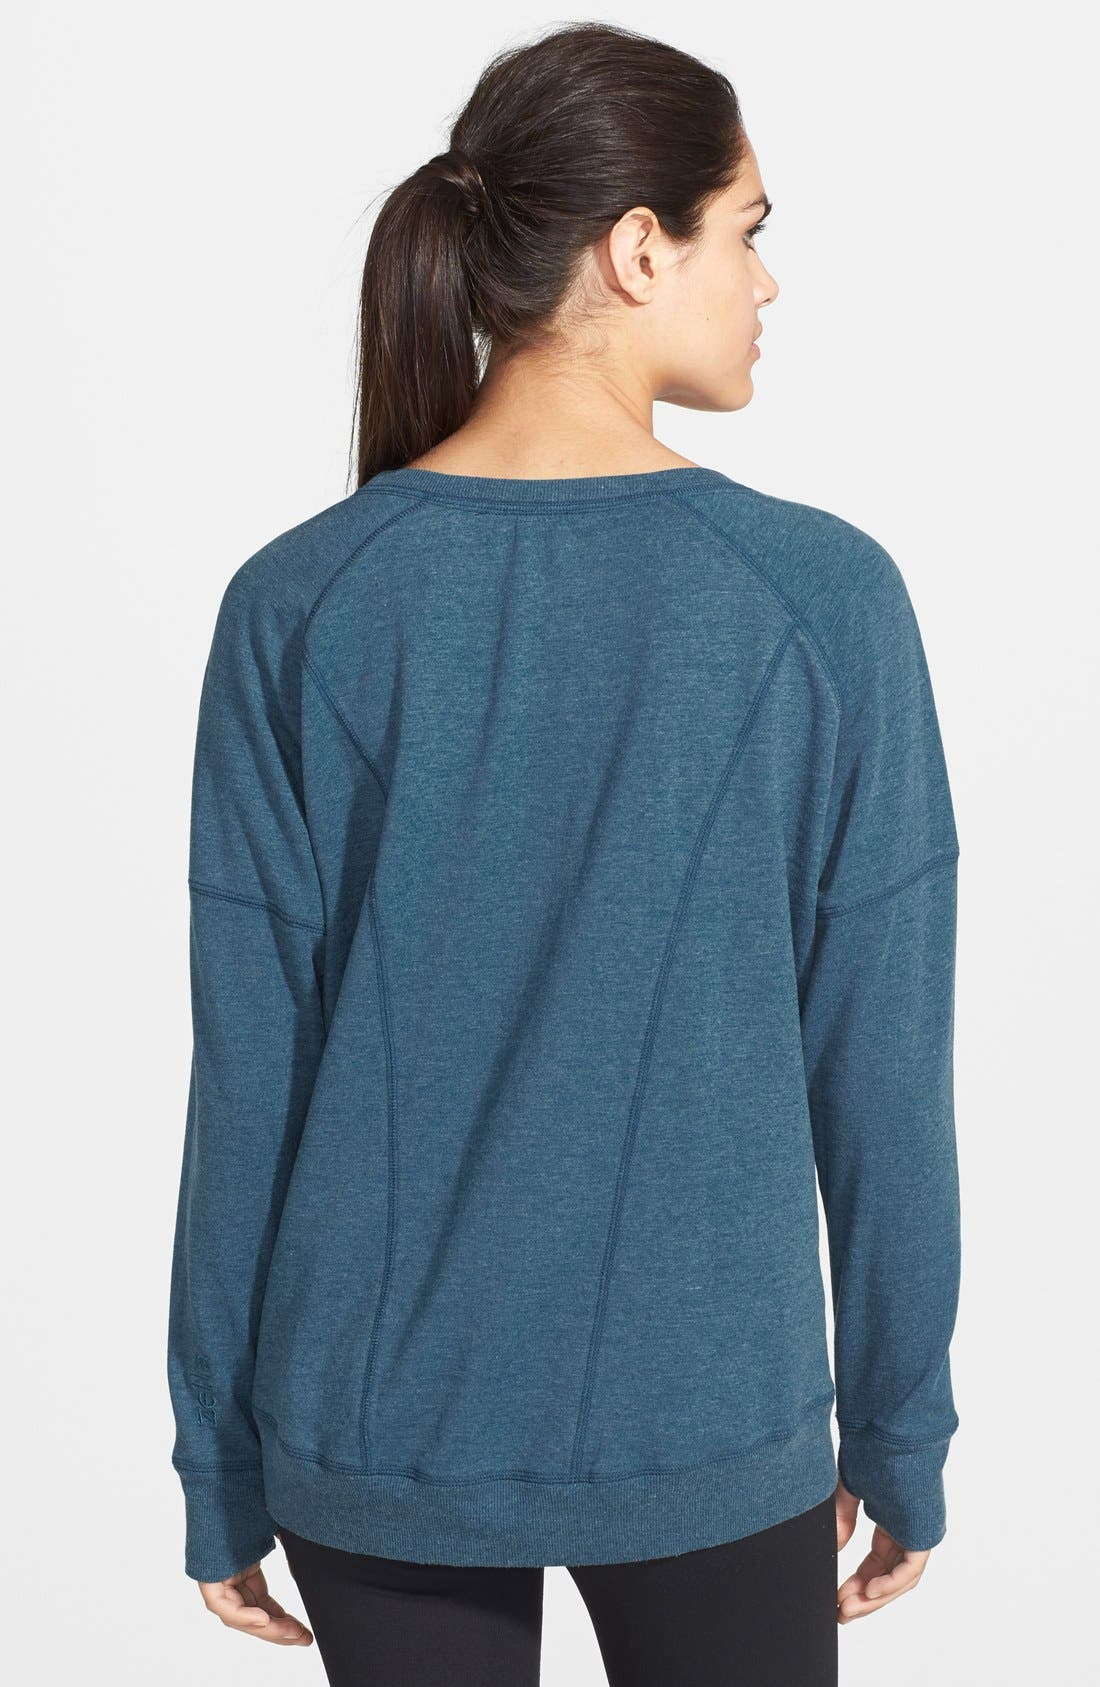 'Heart It' French Terry Sweatshirt,                             Alternate thumbnail 2, color,                             410